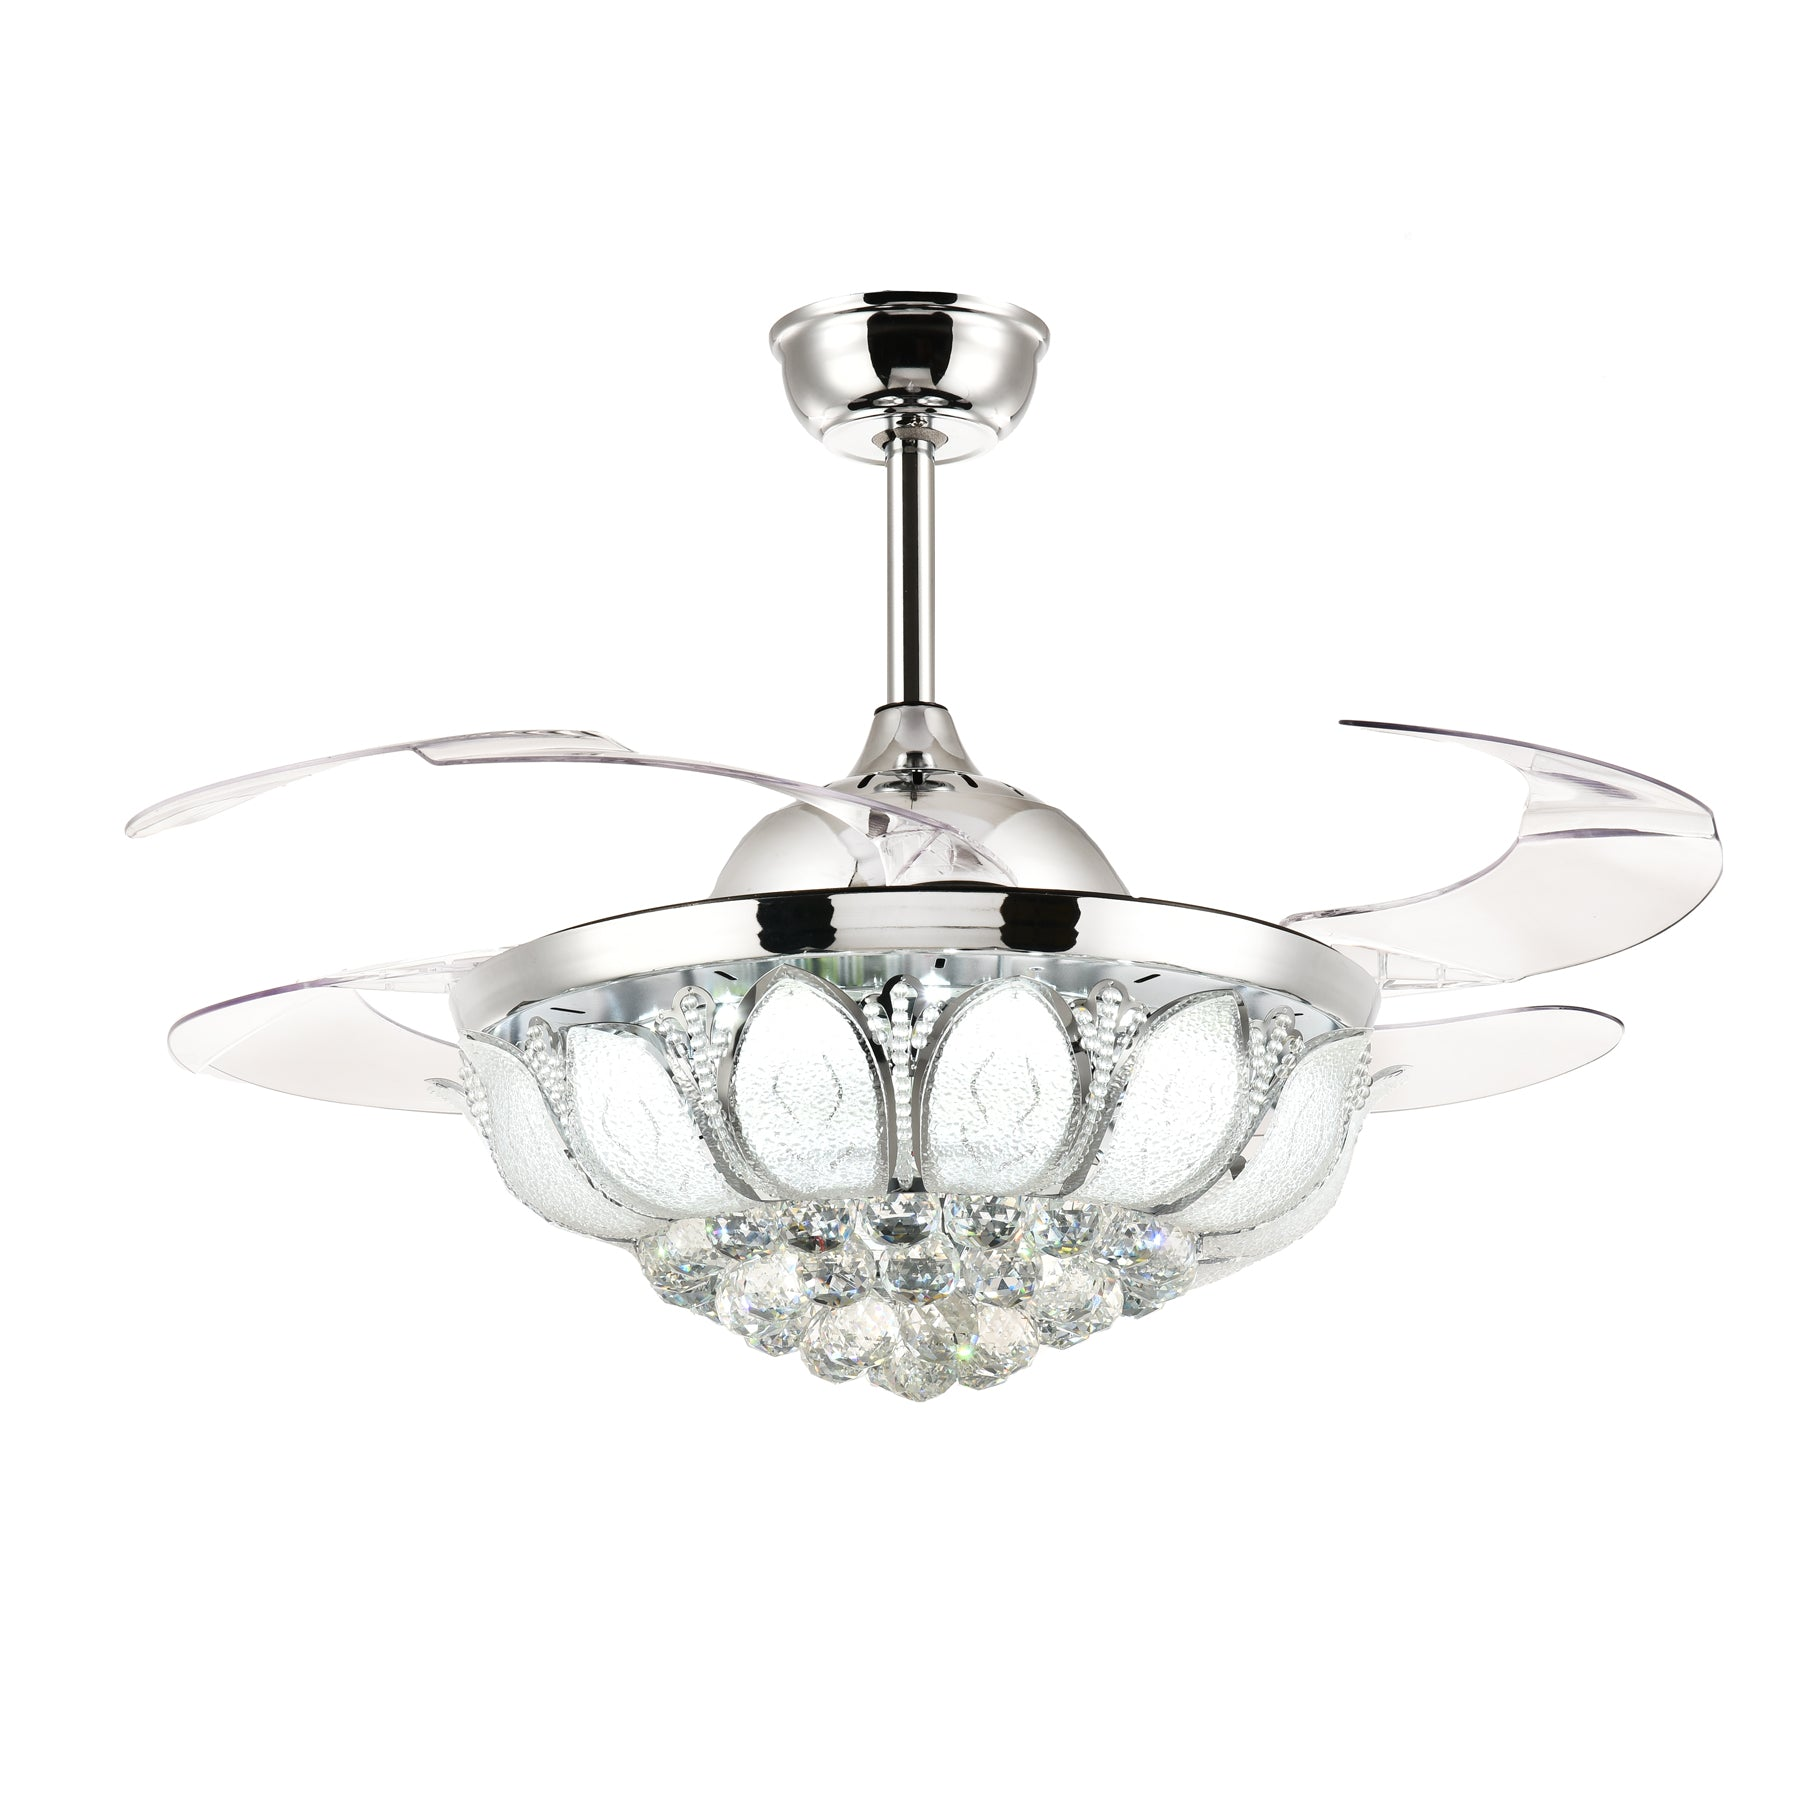 Silver Crystal Ceiling Fan With Dimmable Light | Sofary Lighting